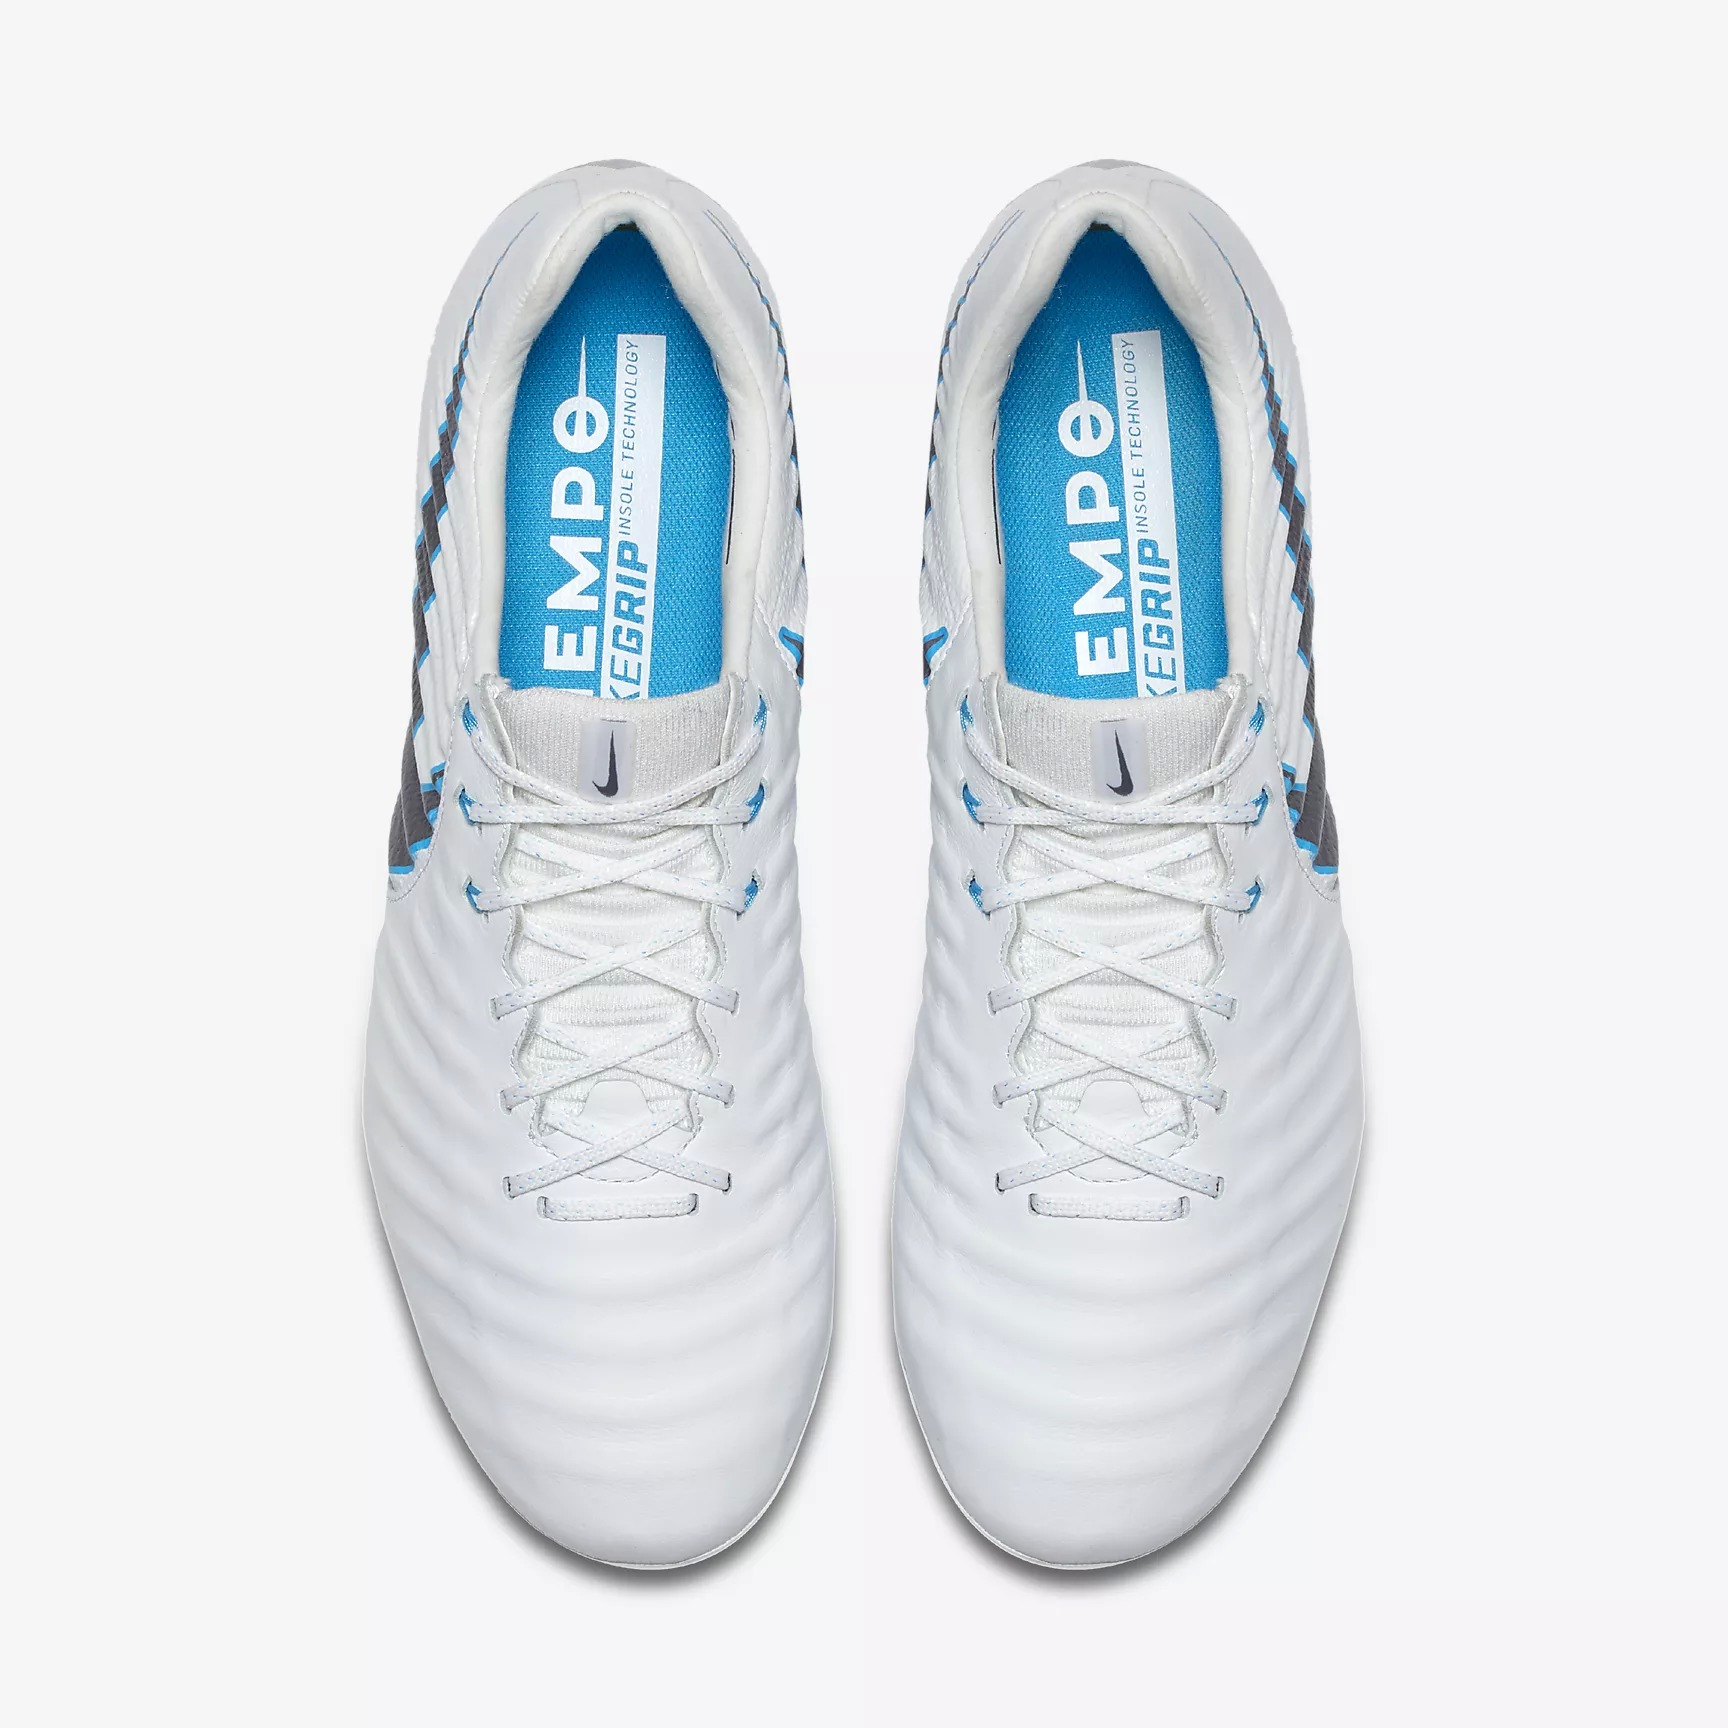 d982cd3d055 ... Click to enlarge image  nike tiempo legend vii elite fg just do it pack white blue hero metallic cool grey metallic cool grey c.jpg  ...